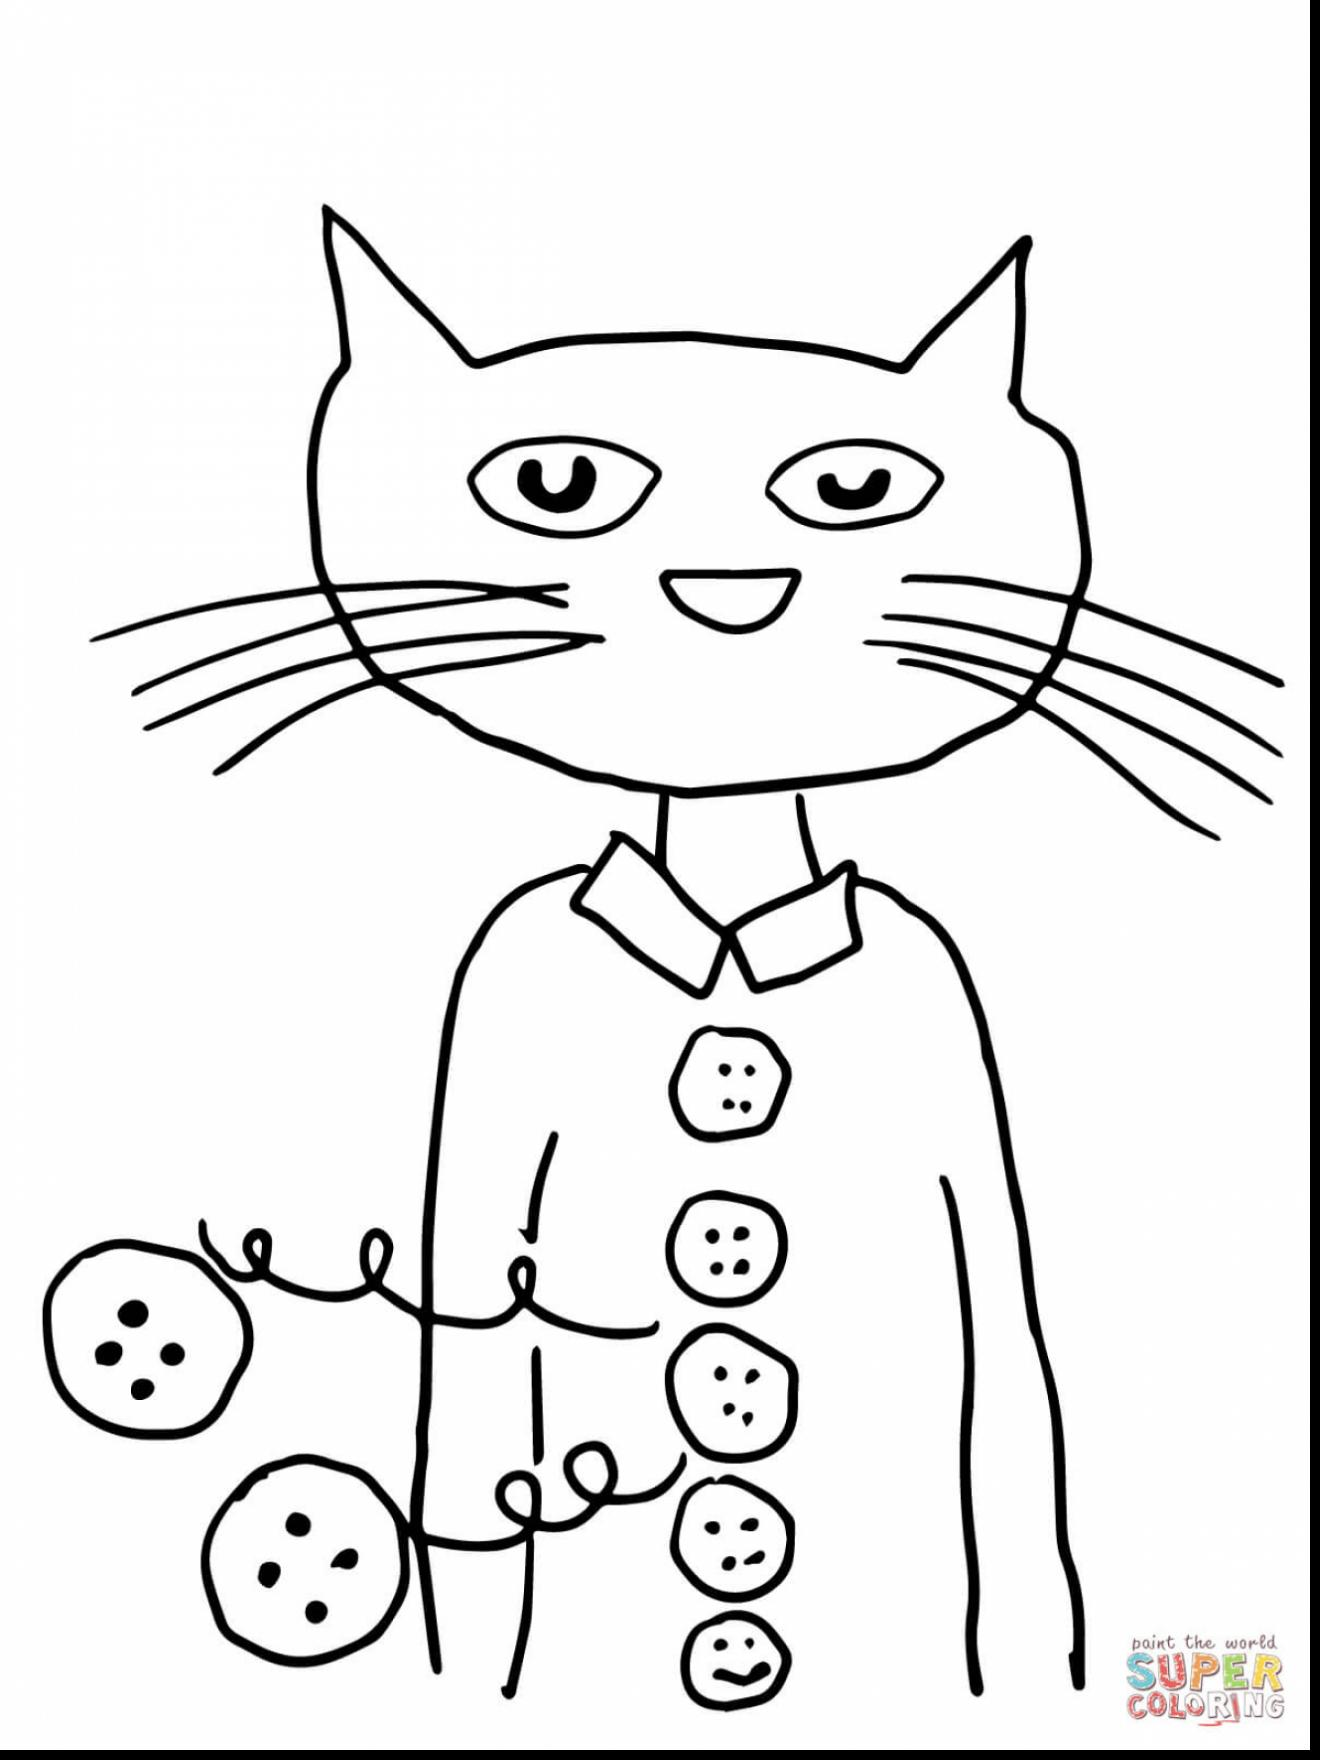 1320x1760 Magnificent Pete The Cat Four Groovy Buttons Coloring Page